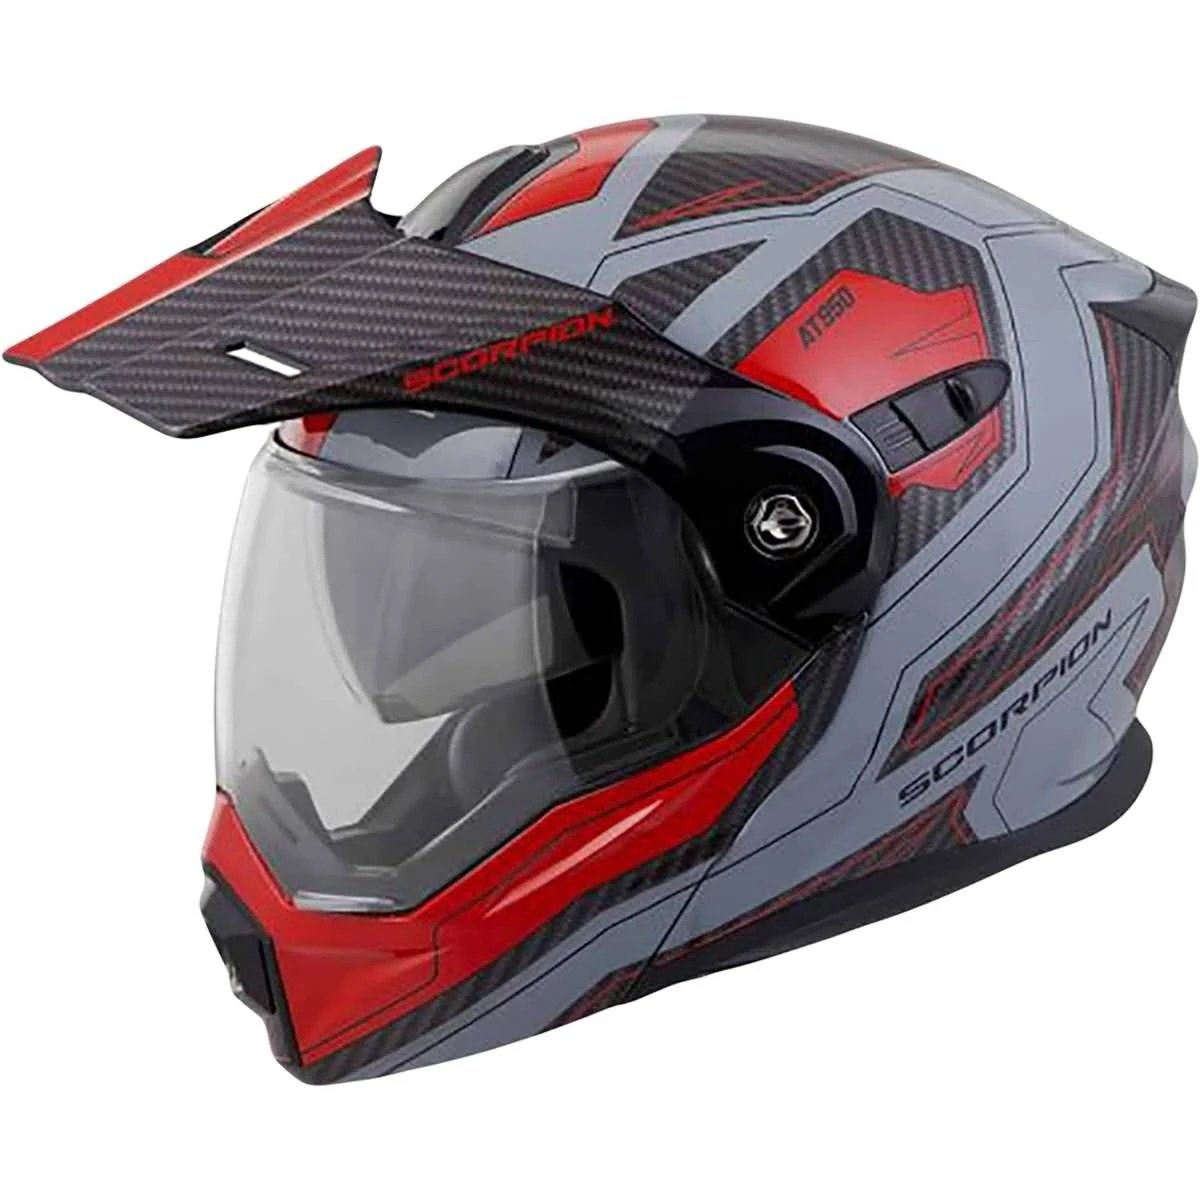 Scorpion EXO-AT950 Tucson Adult Off-Road Helmets